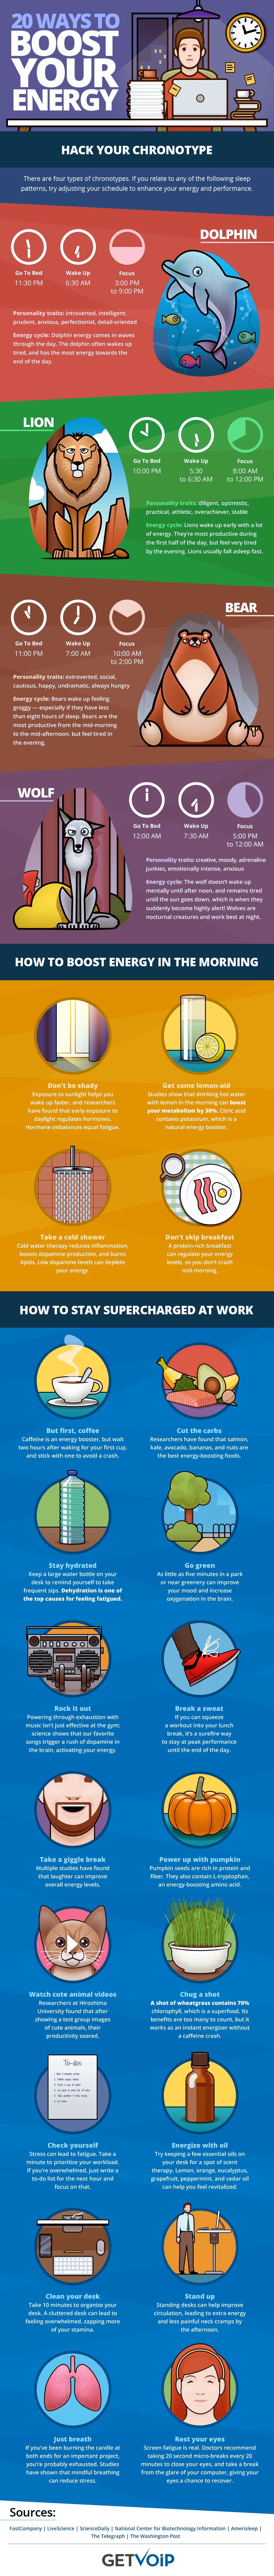 How To Increase Your Energy Levels At Your Workplace - Infographic